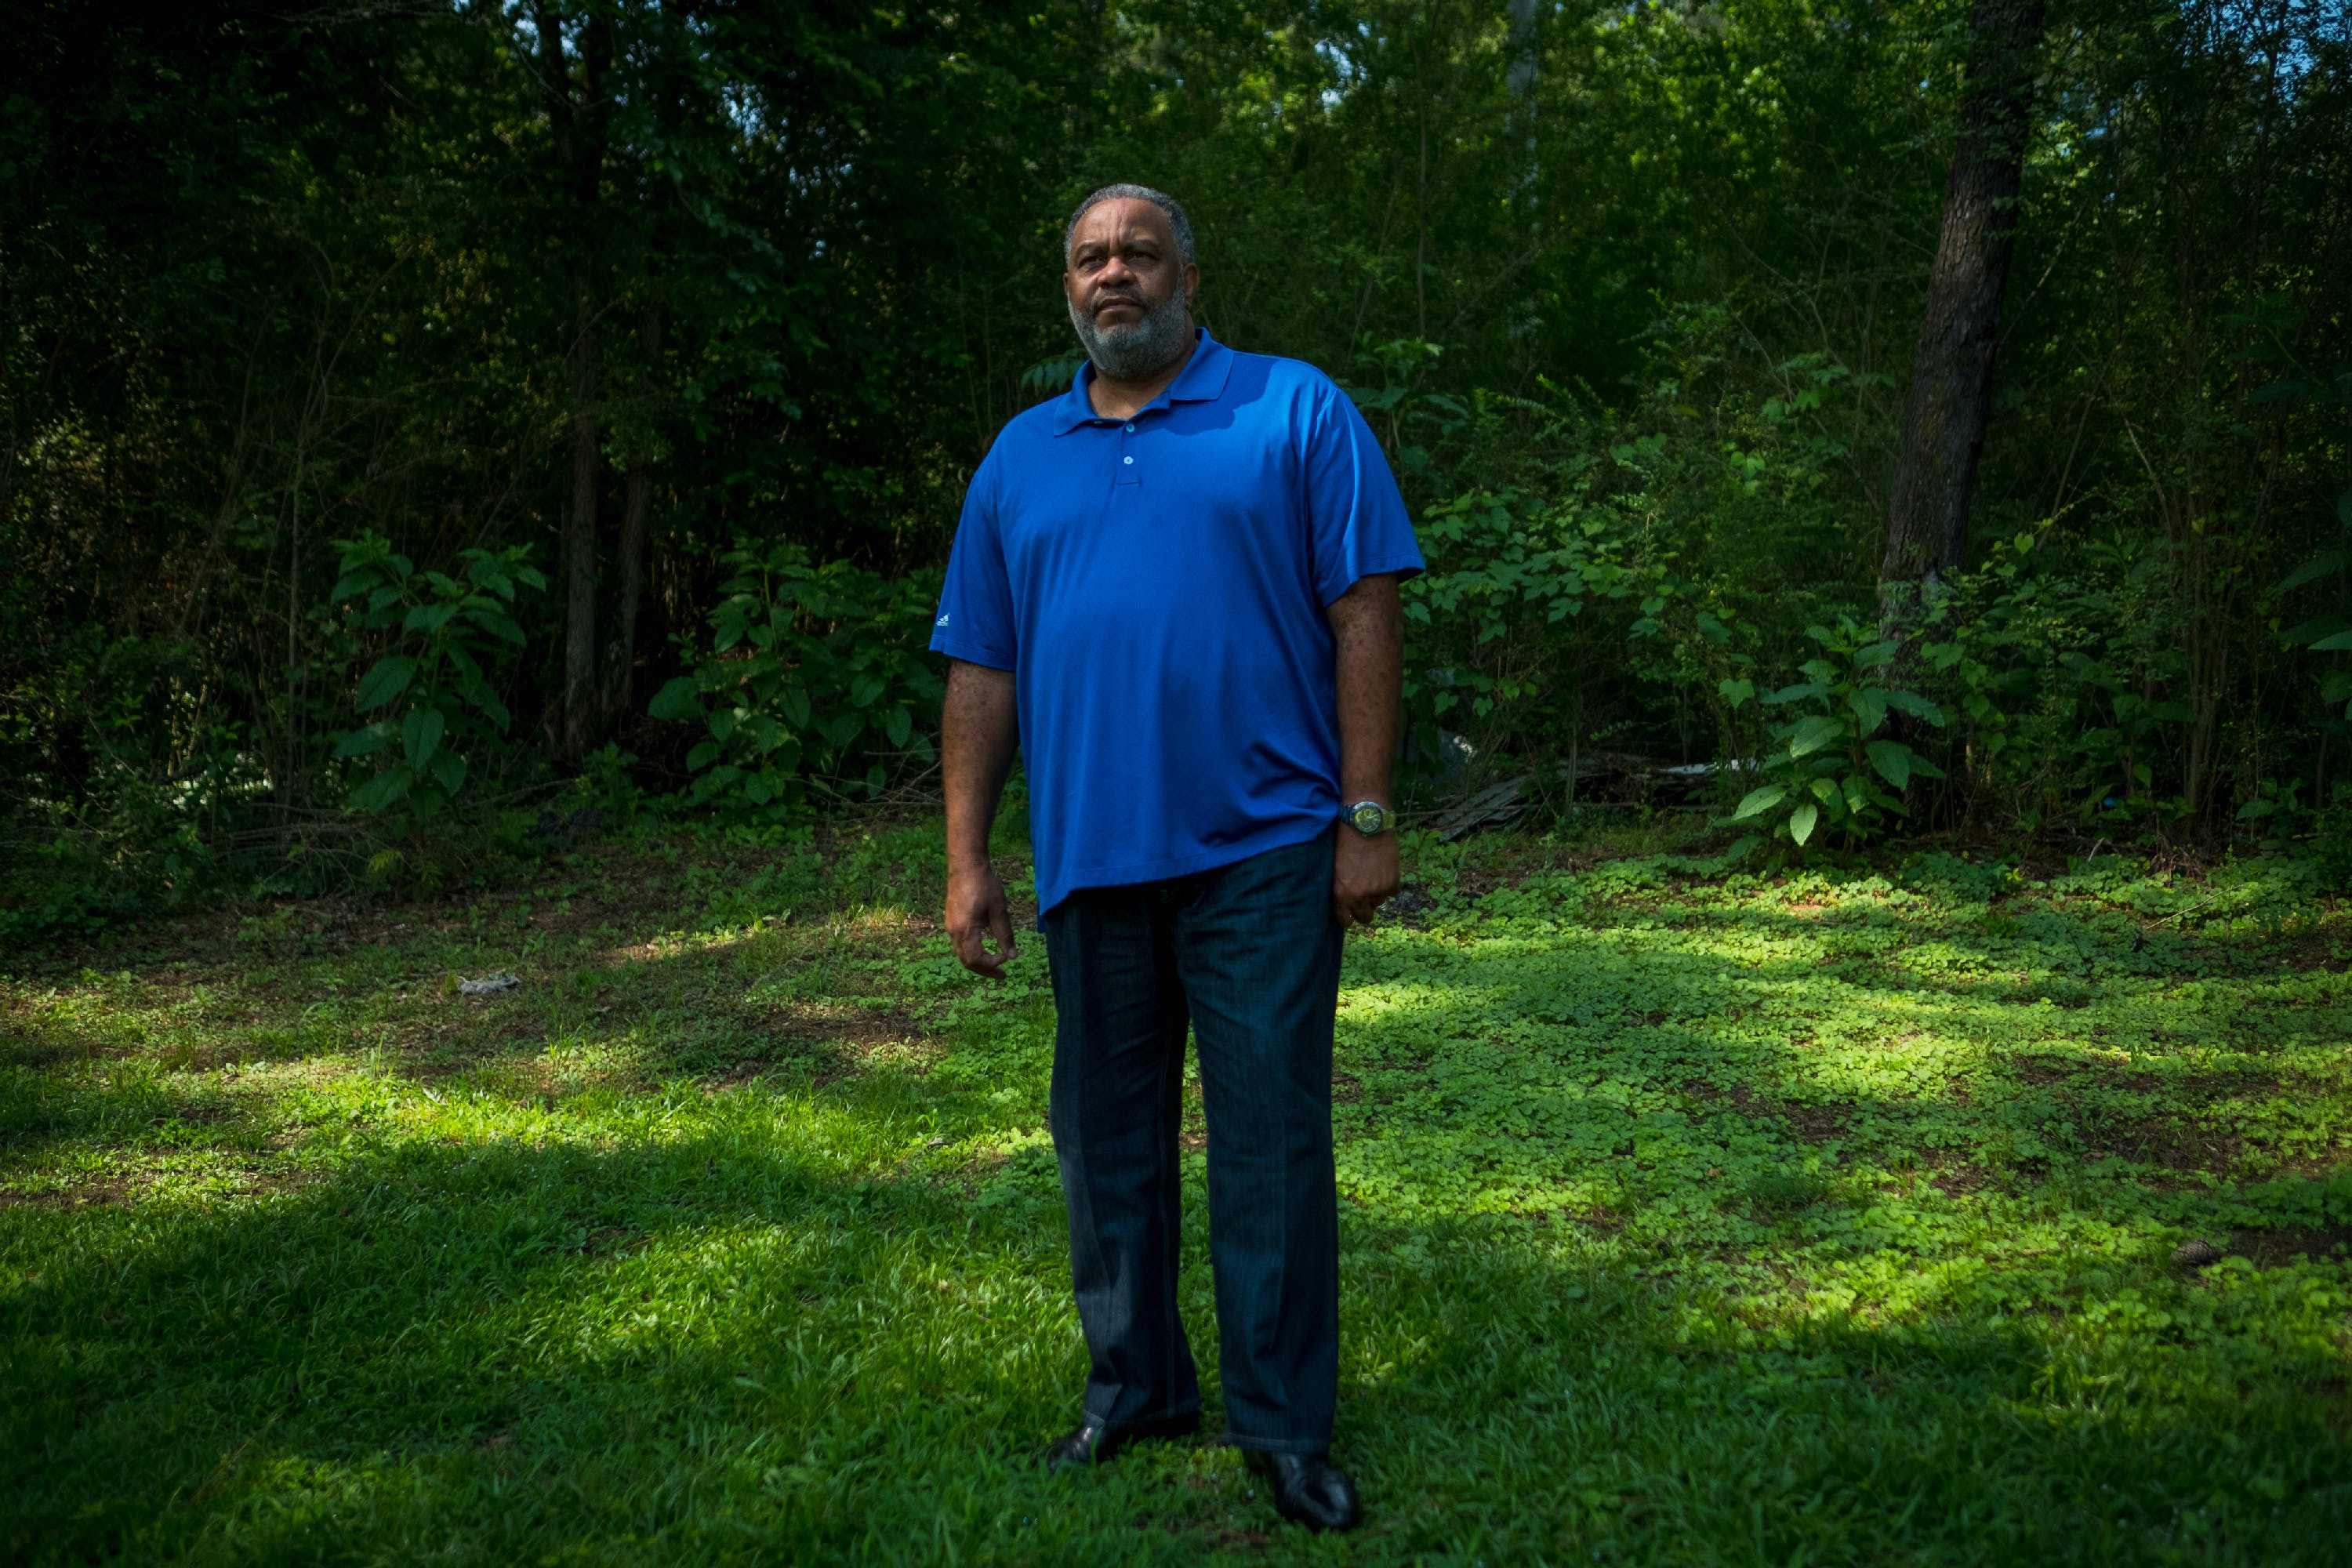 "Anthony Ray Hinton stands near the spot in the yard of his home in Quinton, Alabama, Sunday, June 3, 2018, where Alabama police officers came to arrest him for crimes he didn't commit in 1985. When he is not traveling, Hinton says he spends a lot of time outdoors. ""It just gives me a sense of belonging. When one has been locked up, the last place I want to be is stuck in the house. I love the outdoors."" Hinton spent 30 years on death row after he was wrongfully incarcerated for two murders he did not commit. His recently released his memoir, ""The Sun Does Shine: How I Found Life and Freedom on Death Row.""<br /> (Tamika Moore for The Intercept)"